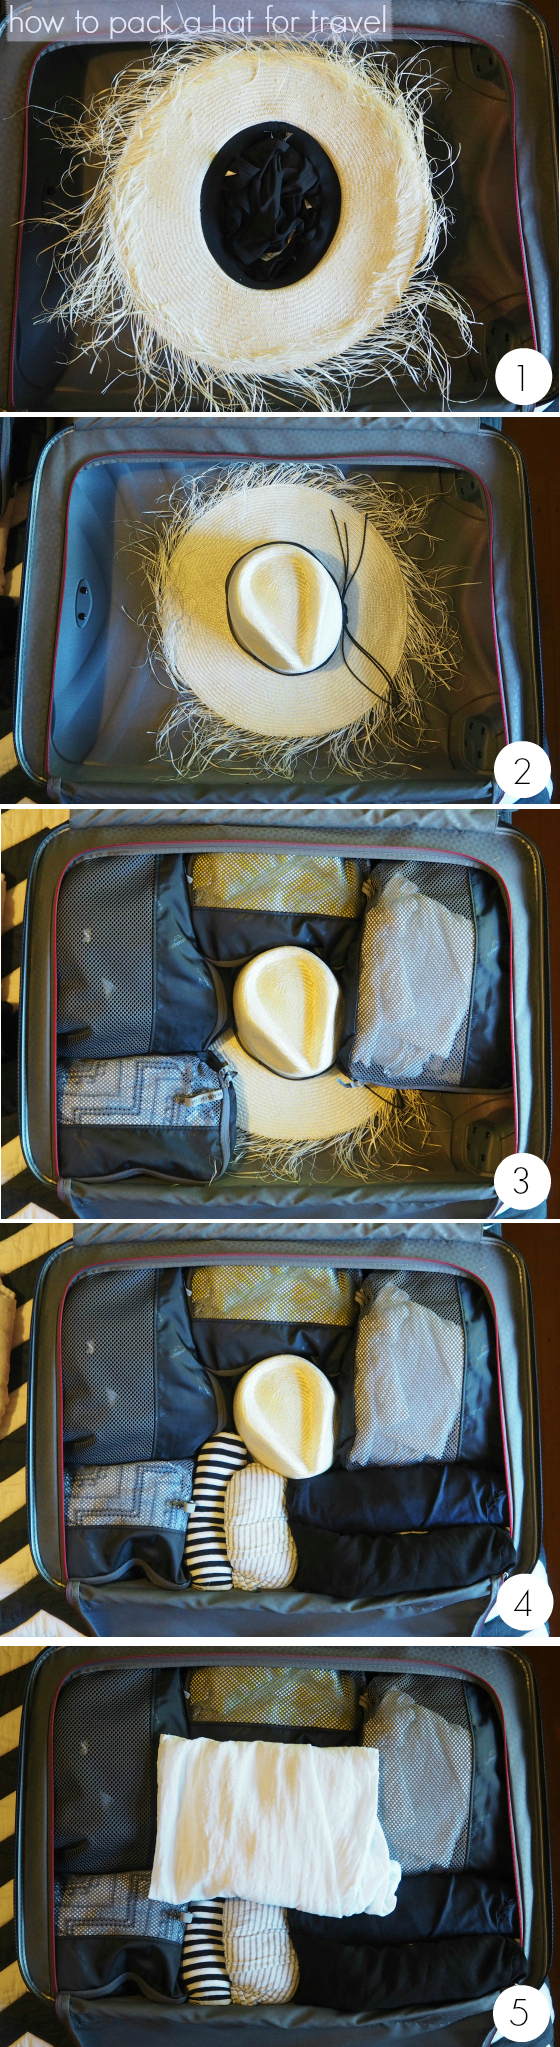 how to pack a hat for travel